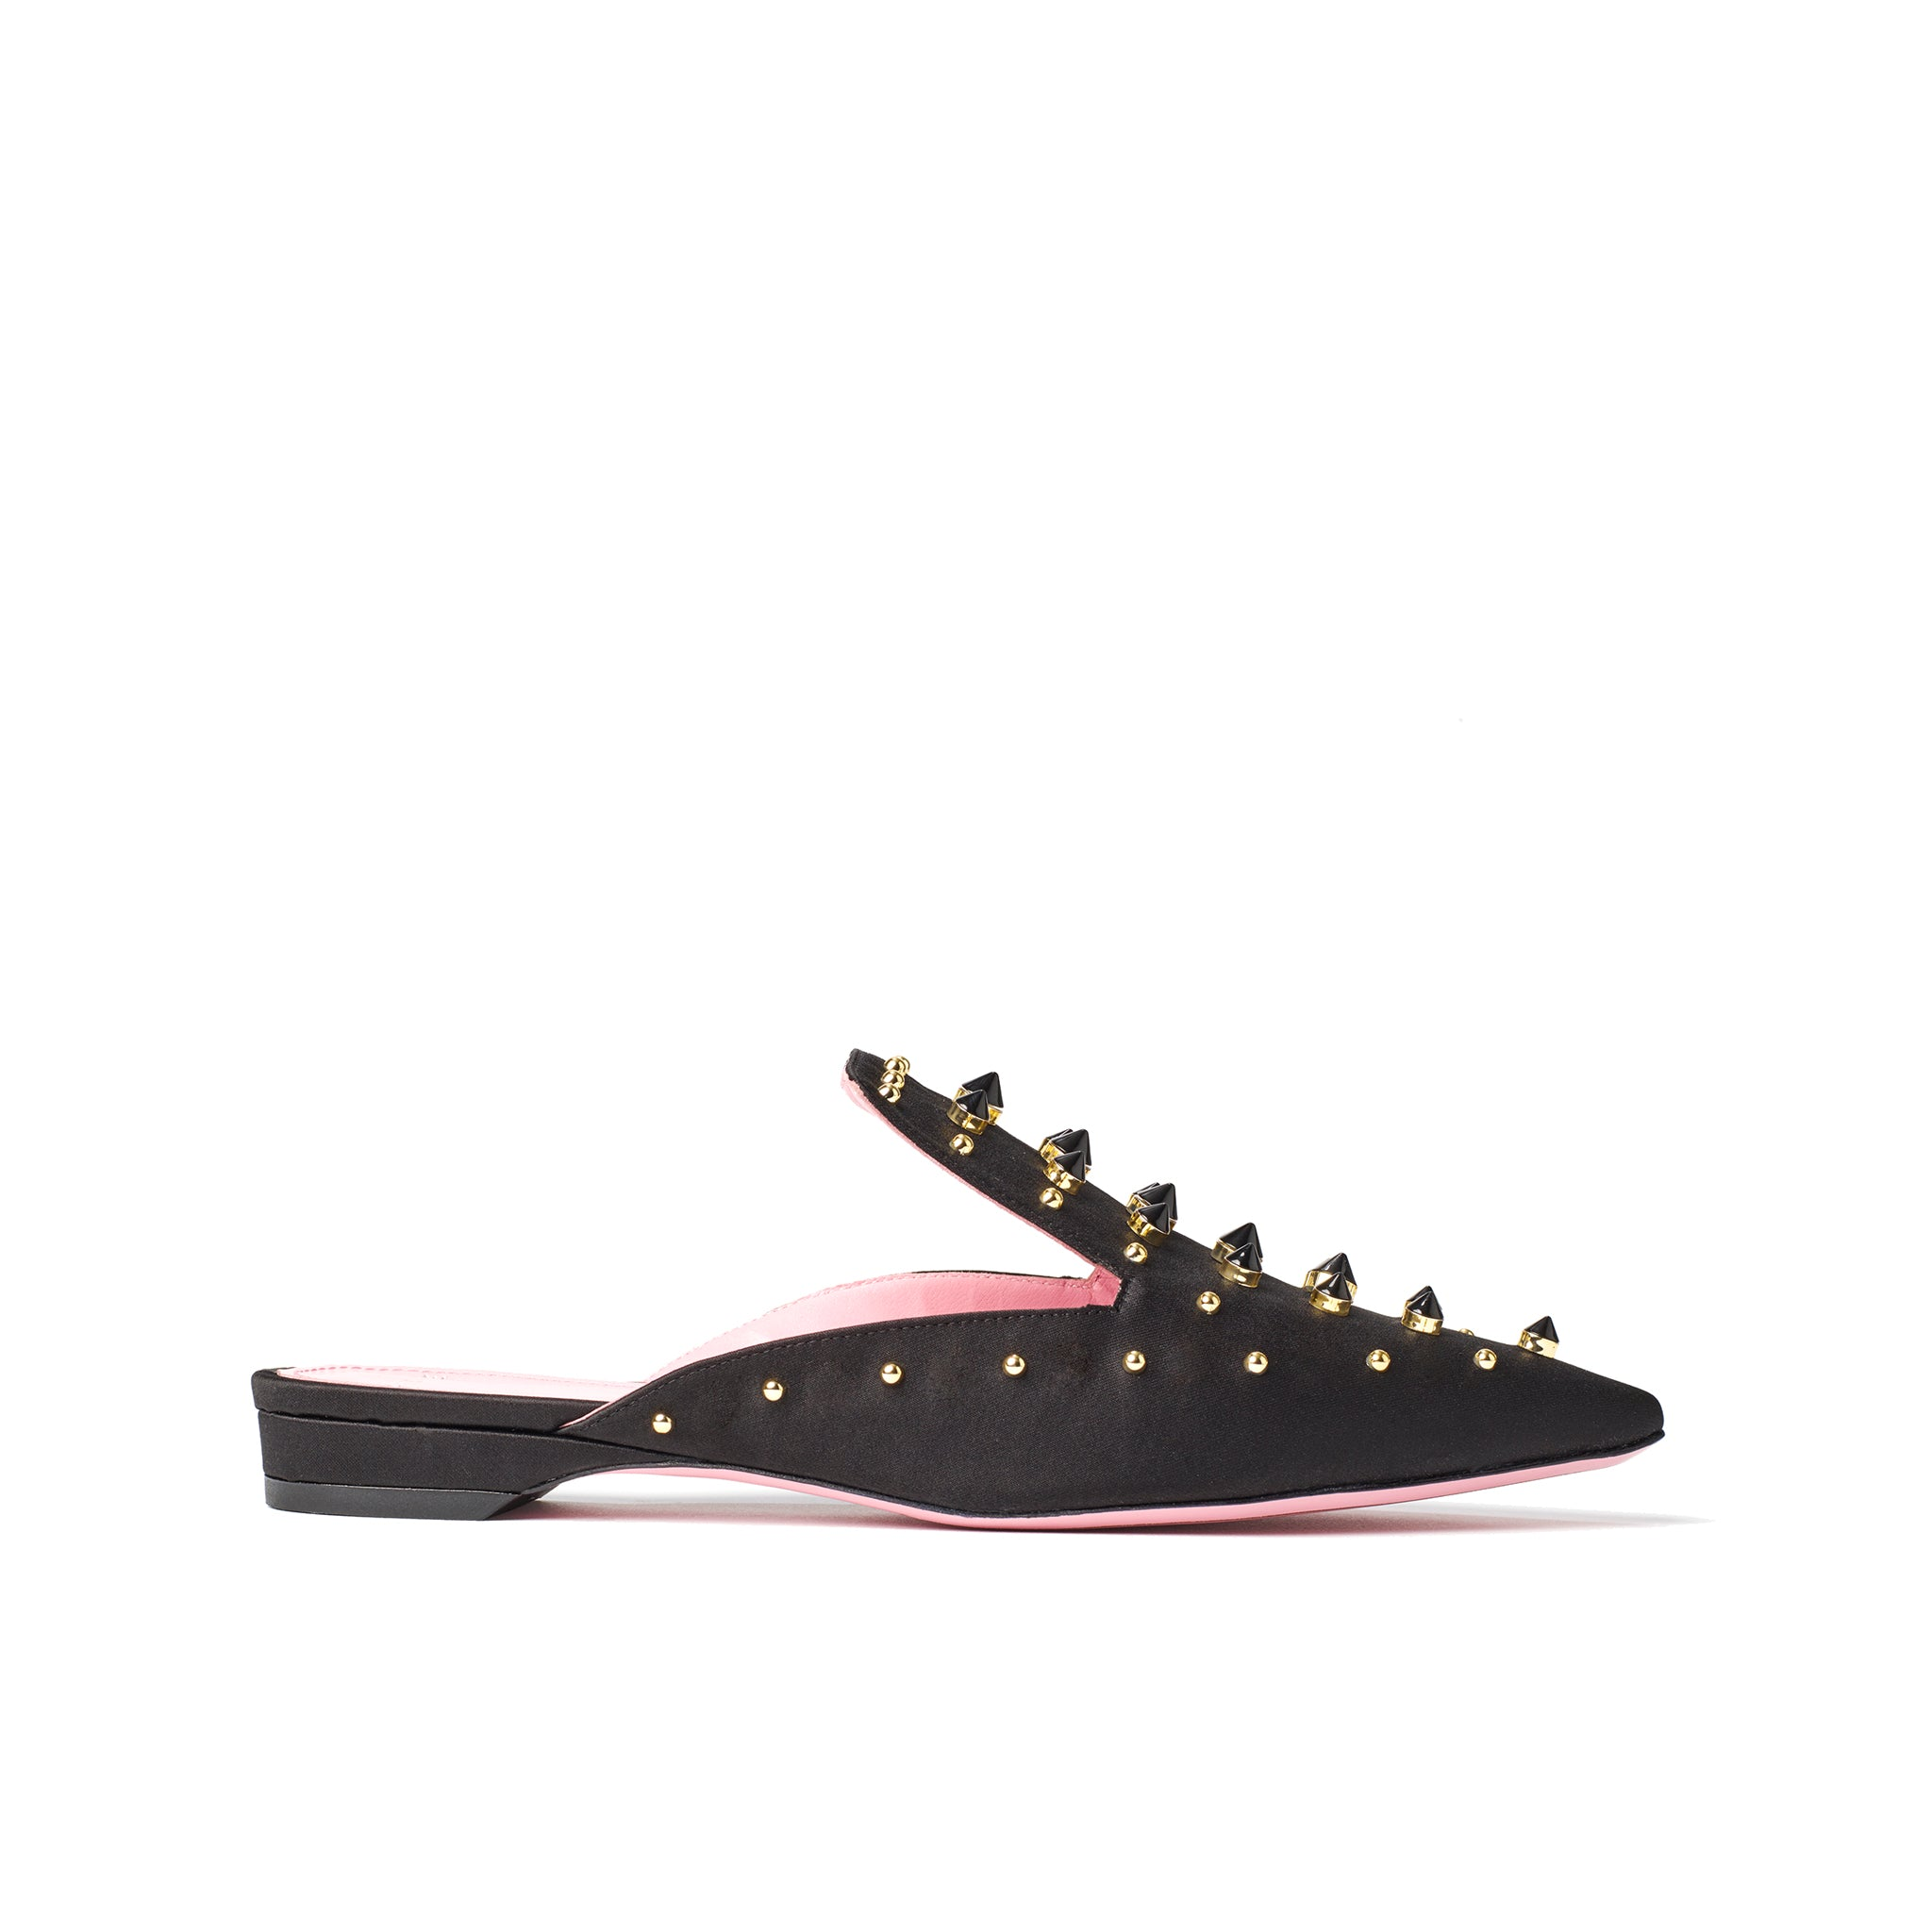 Phare Studded mule in black silk satin with gold and black studs